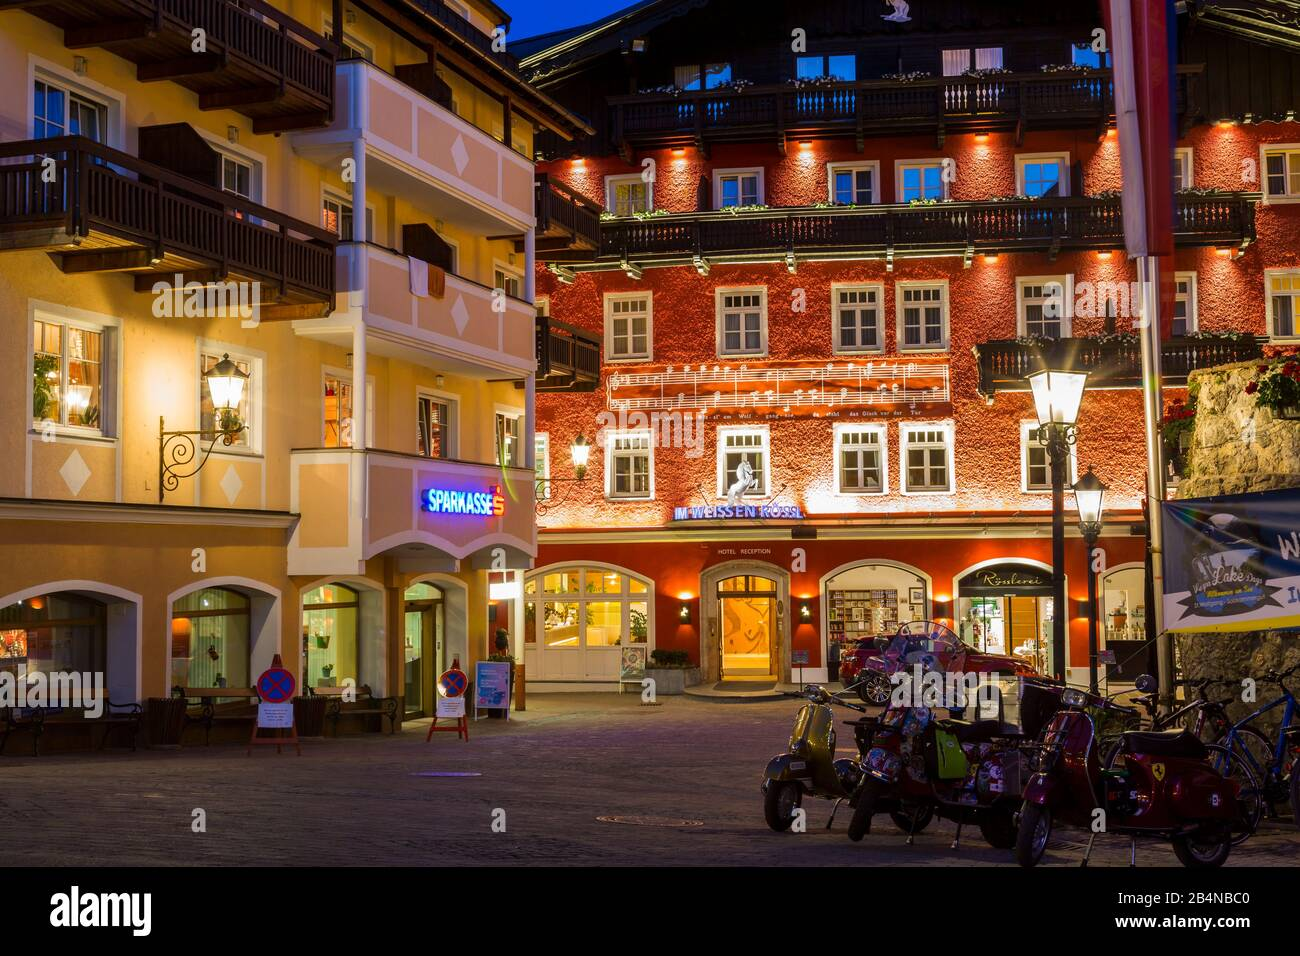 Outdoor Bar And Restaurant At Night In St Wolfgang Austria With Colorful Buildings Around An Urban Square At Twilight Stock Photo Alamy